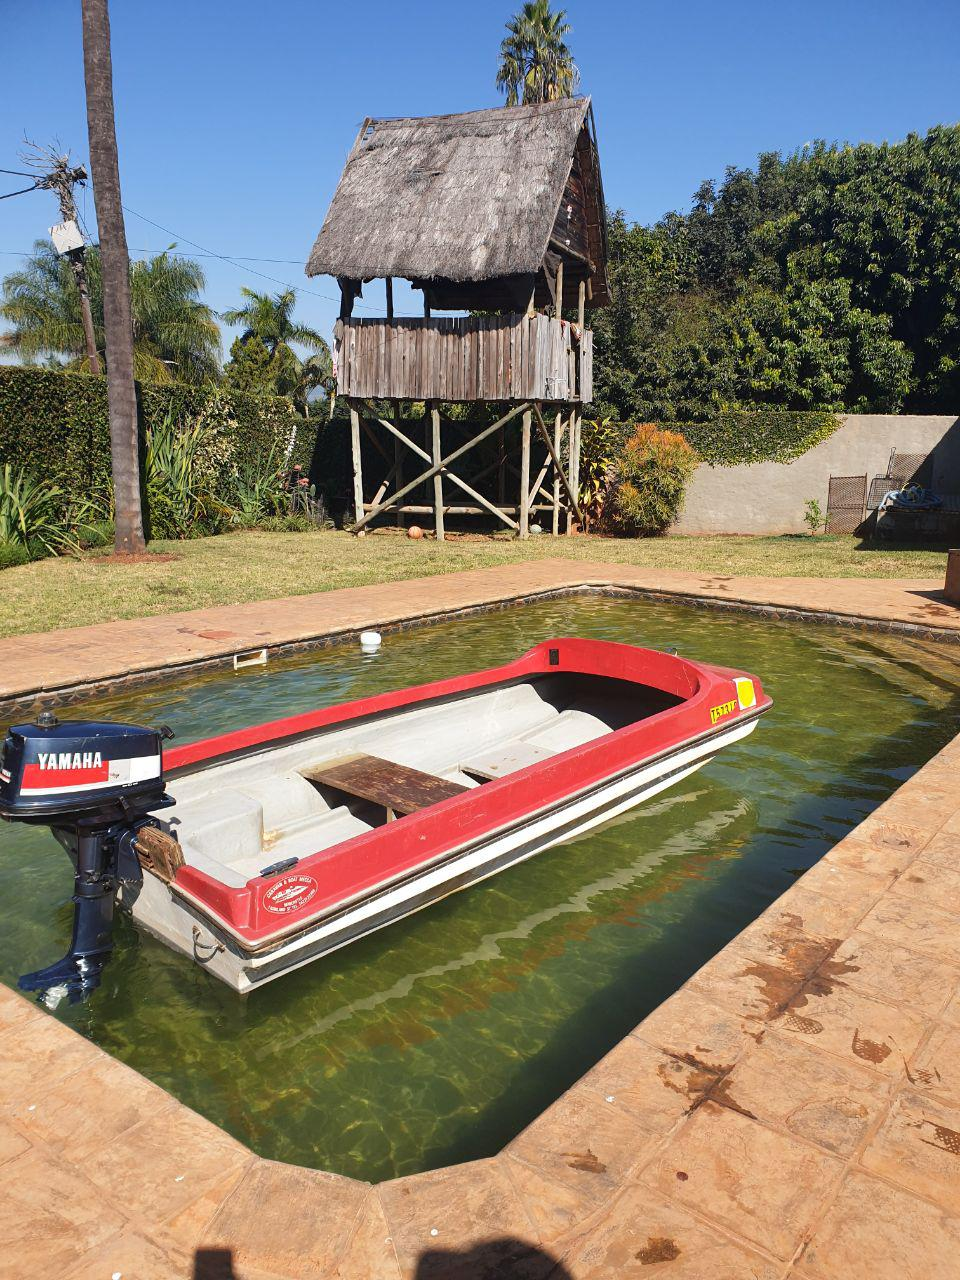 Boat with motor for sale